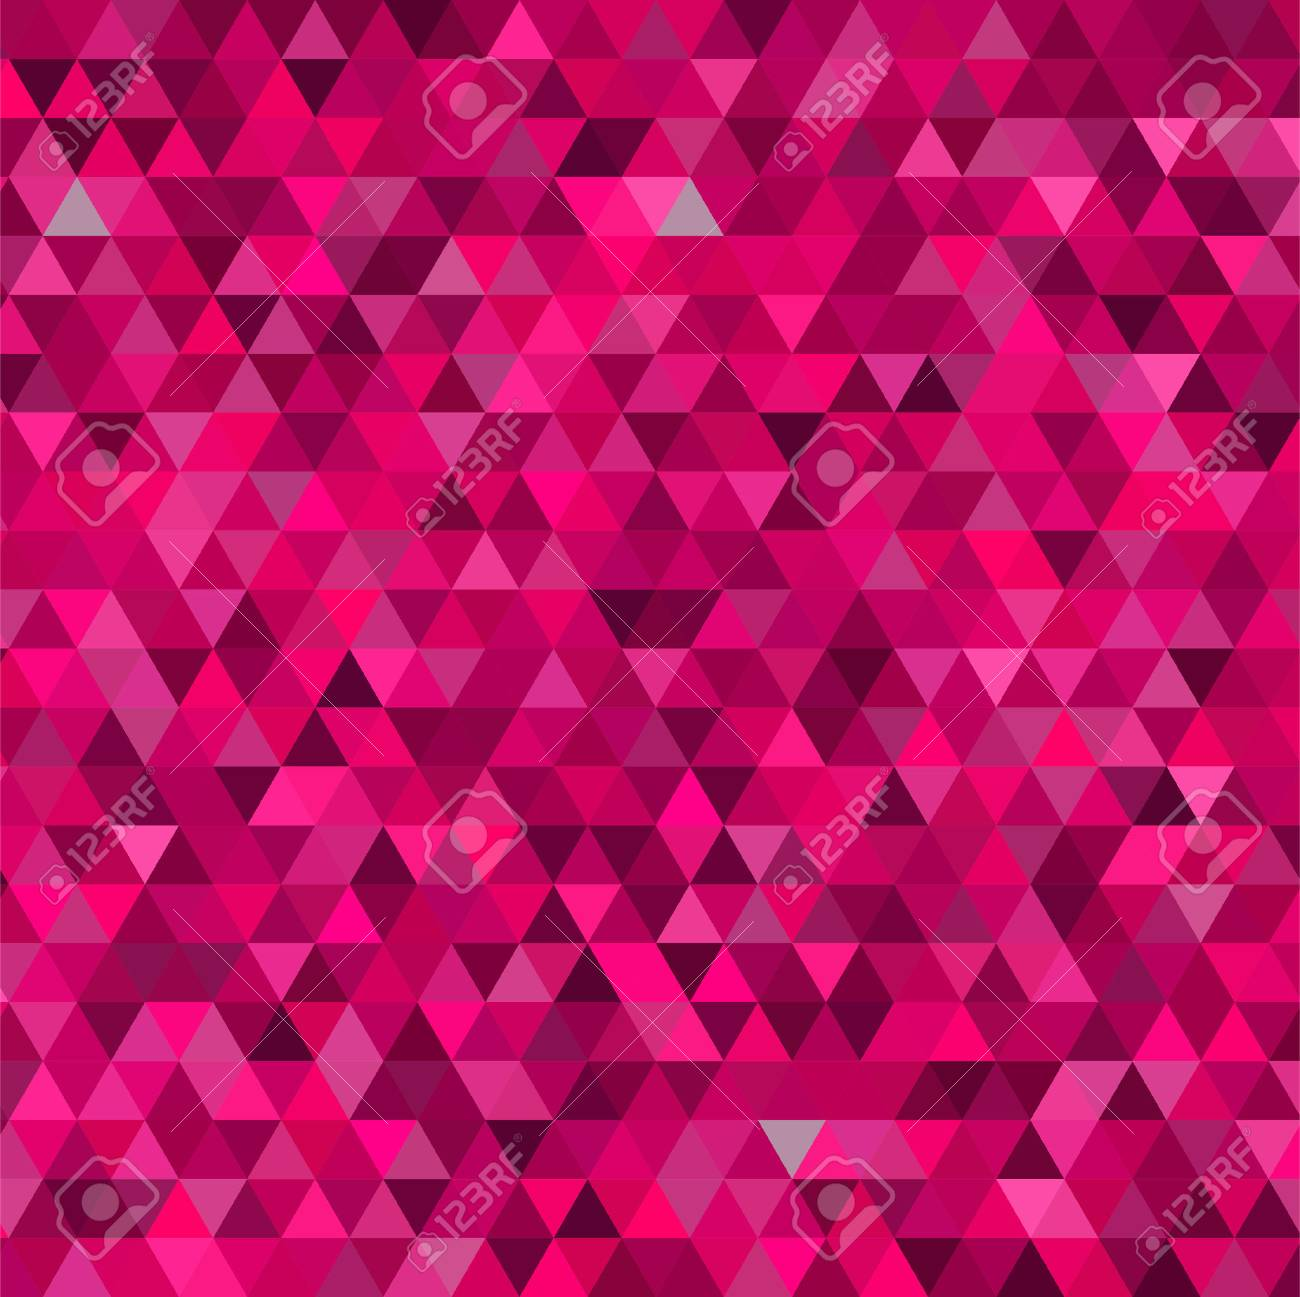 abstract background consisting of small pink triangles vector